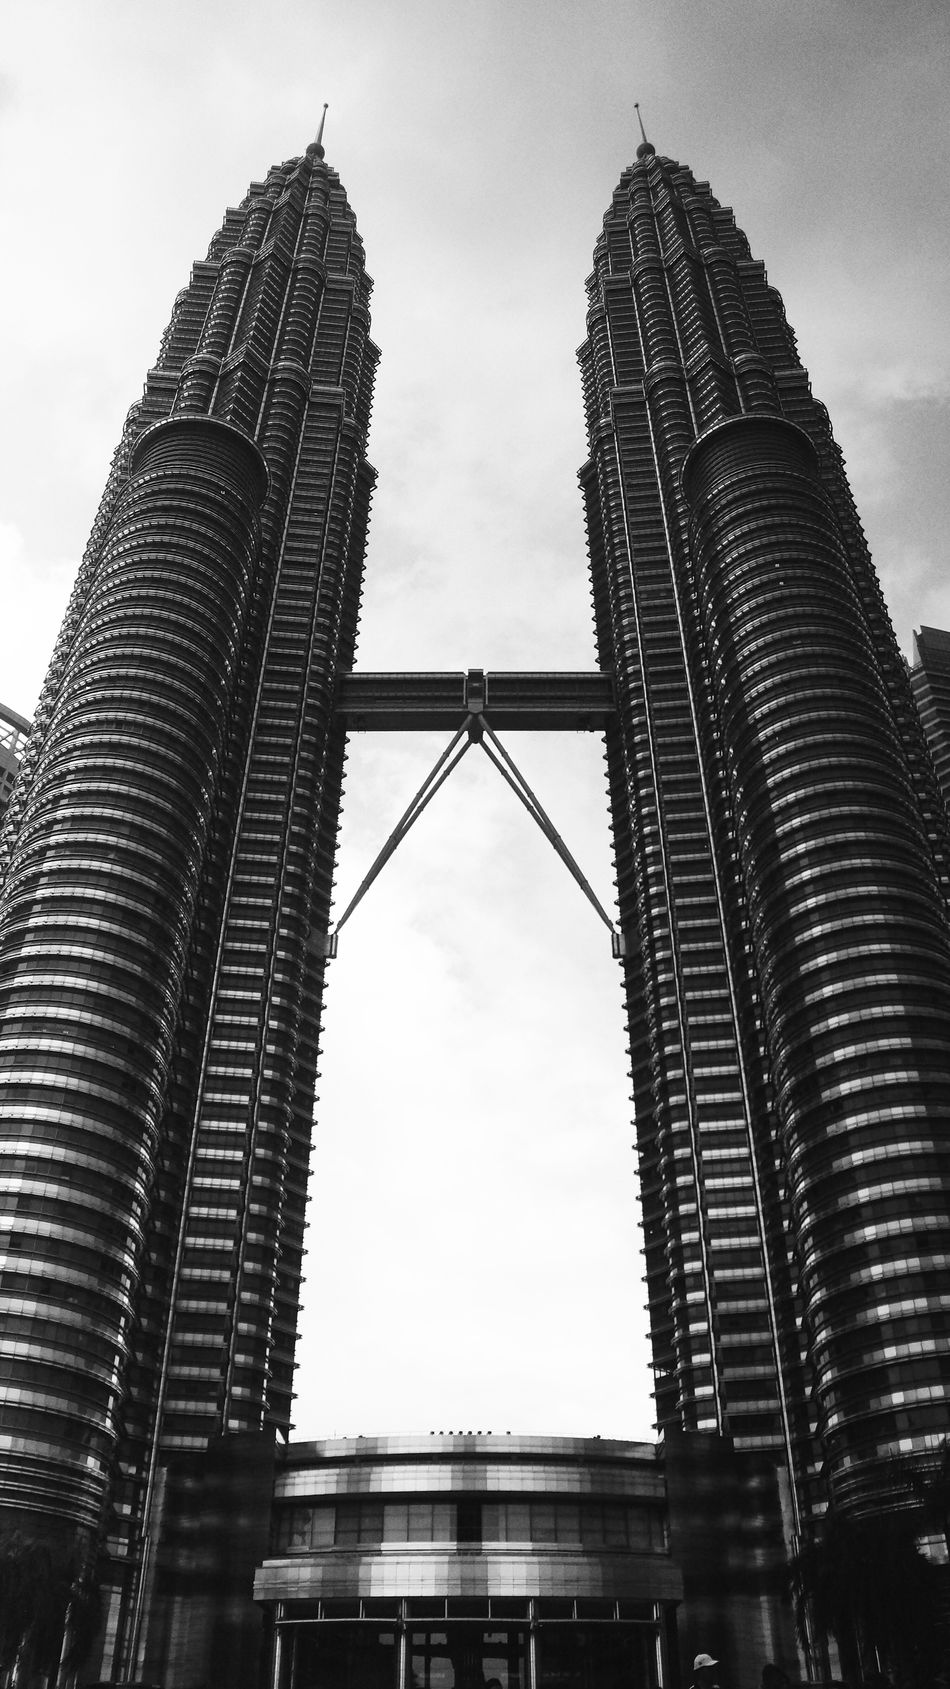 Architecture Built Structure Low Angle View Building Exterior Sky Travel Destinations Skyscraper Outdoors Day Travel City No People Modern